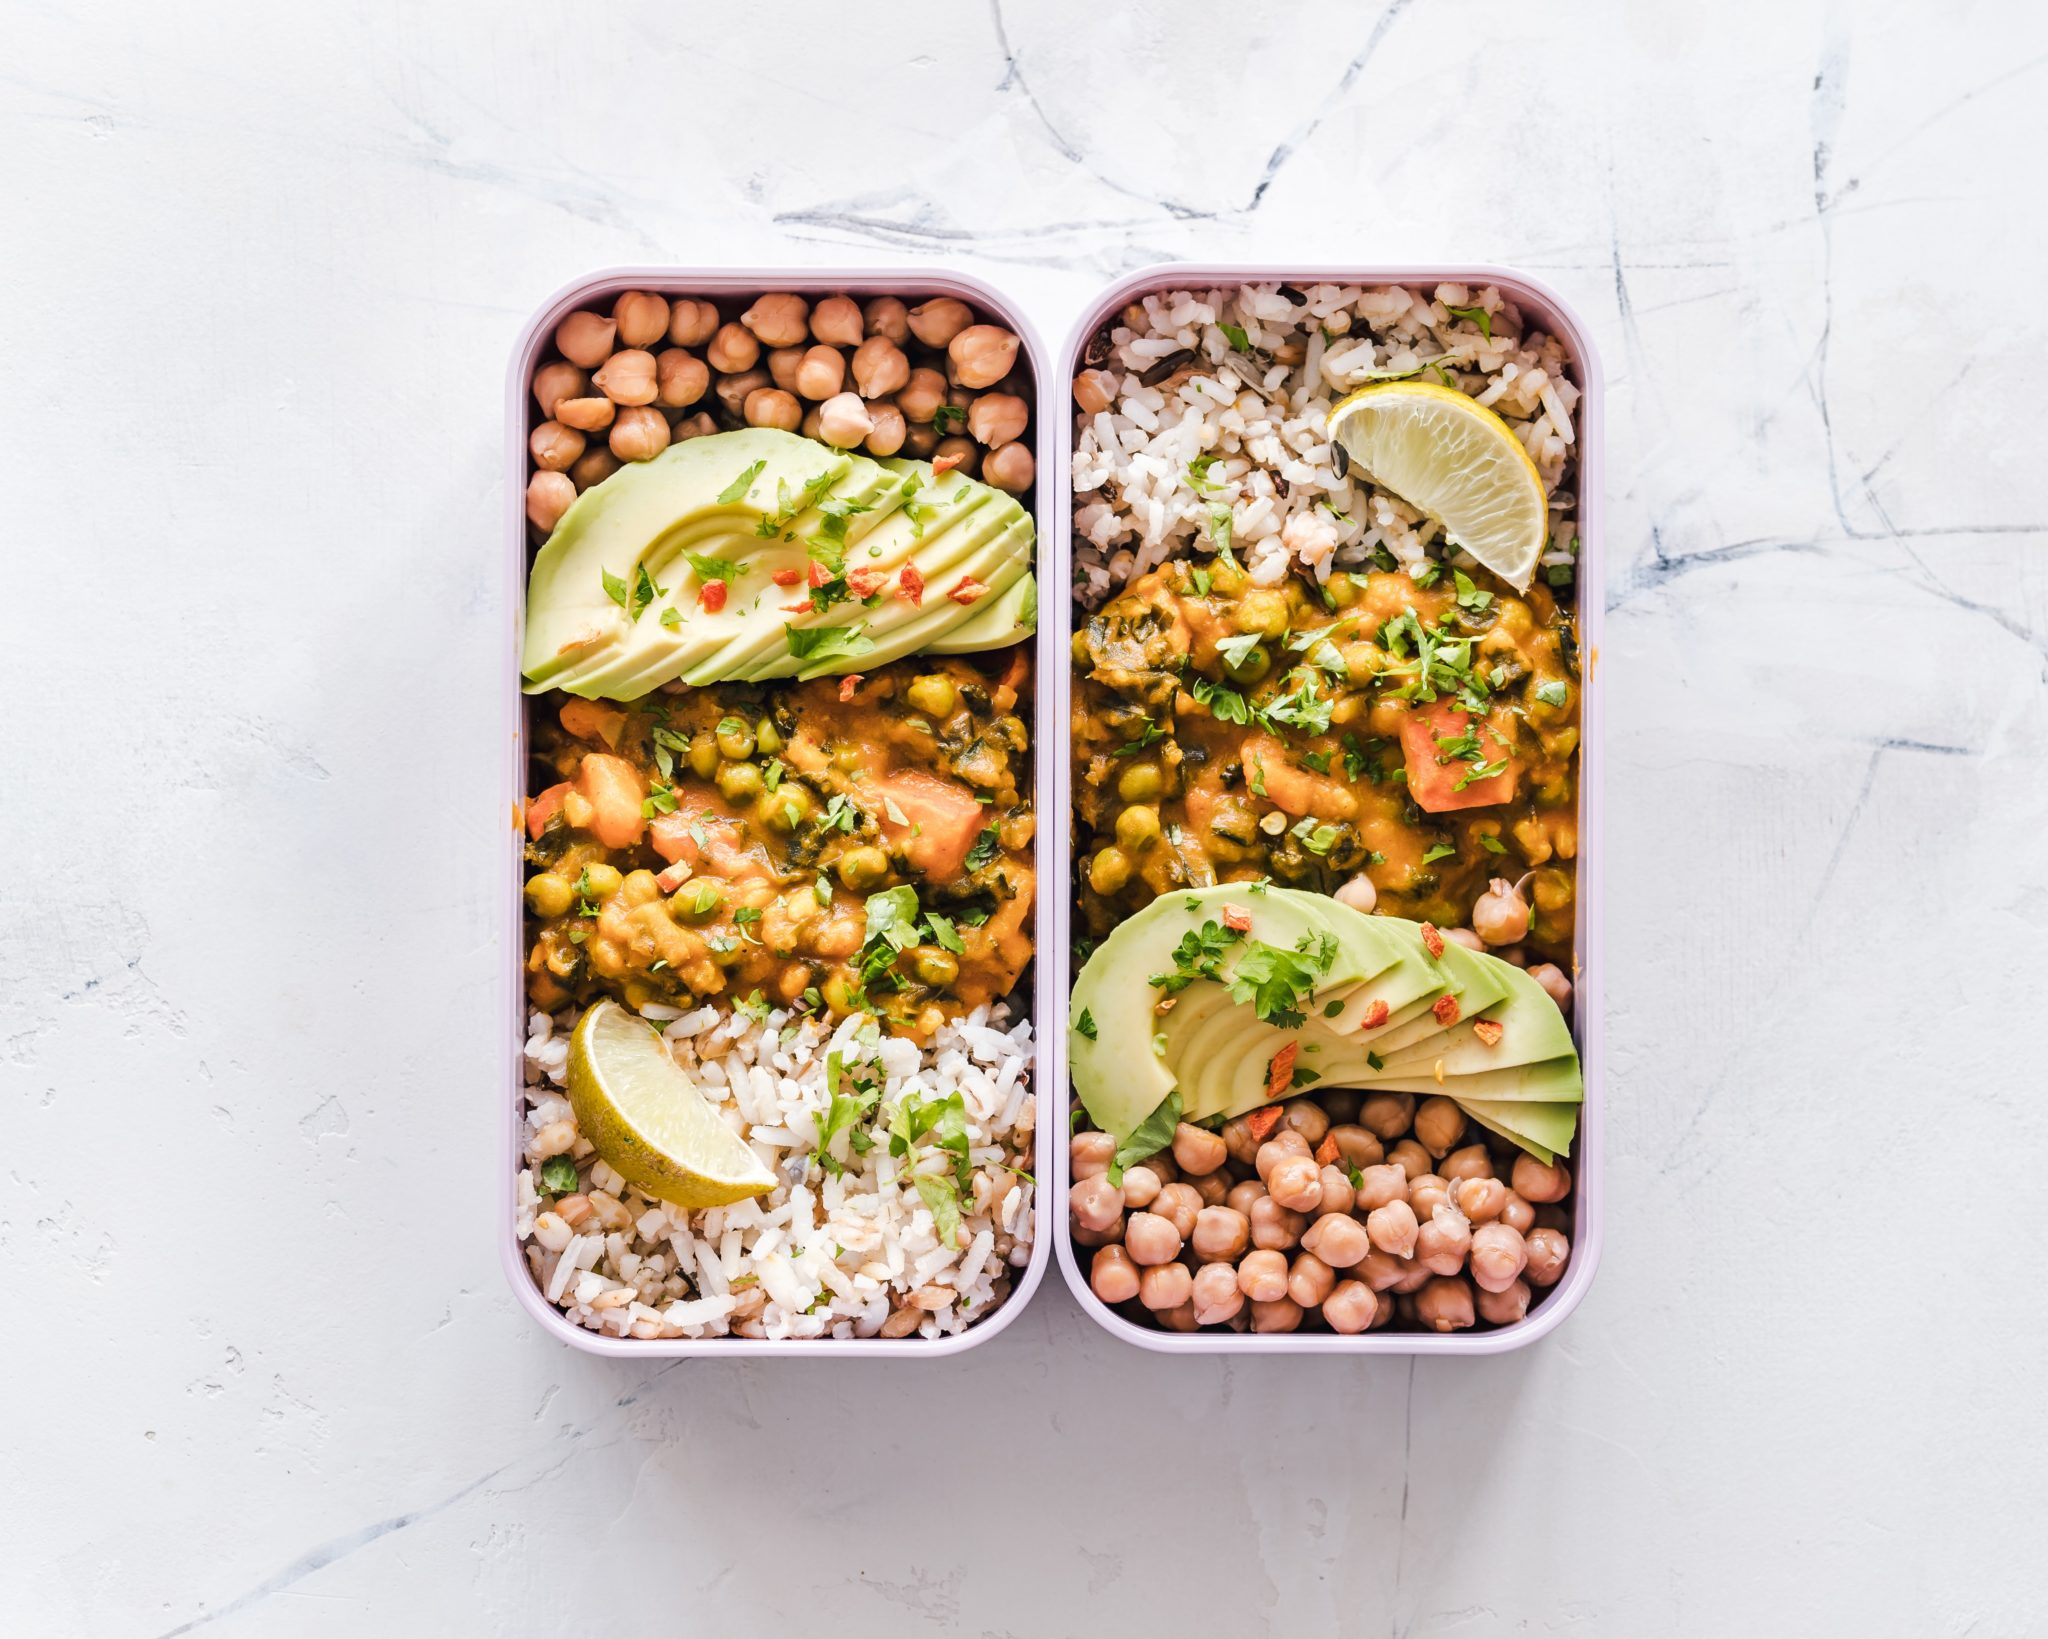 birds eye view of healthy meal prepped food in rectangular containers against a marble background